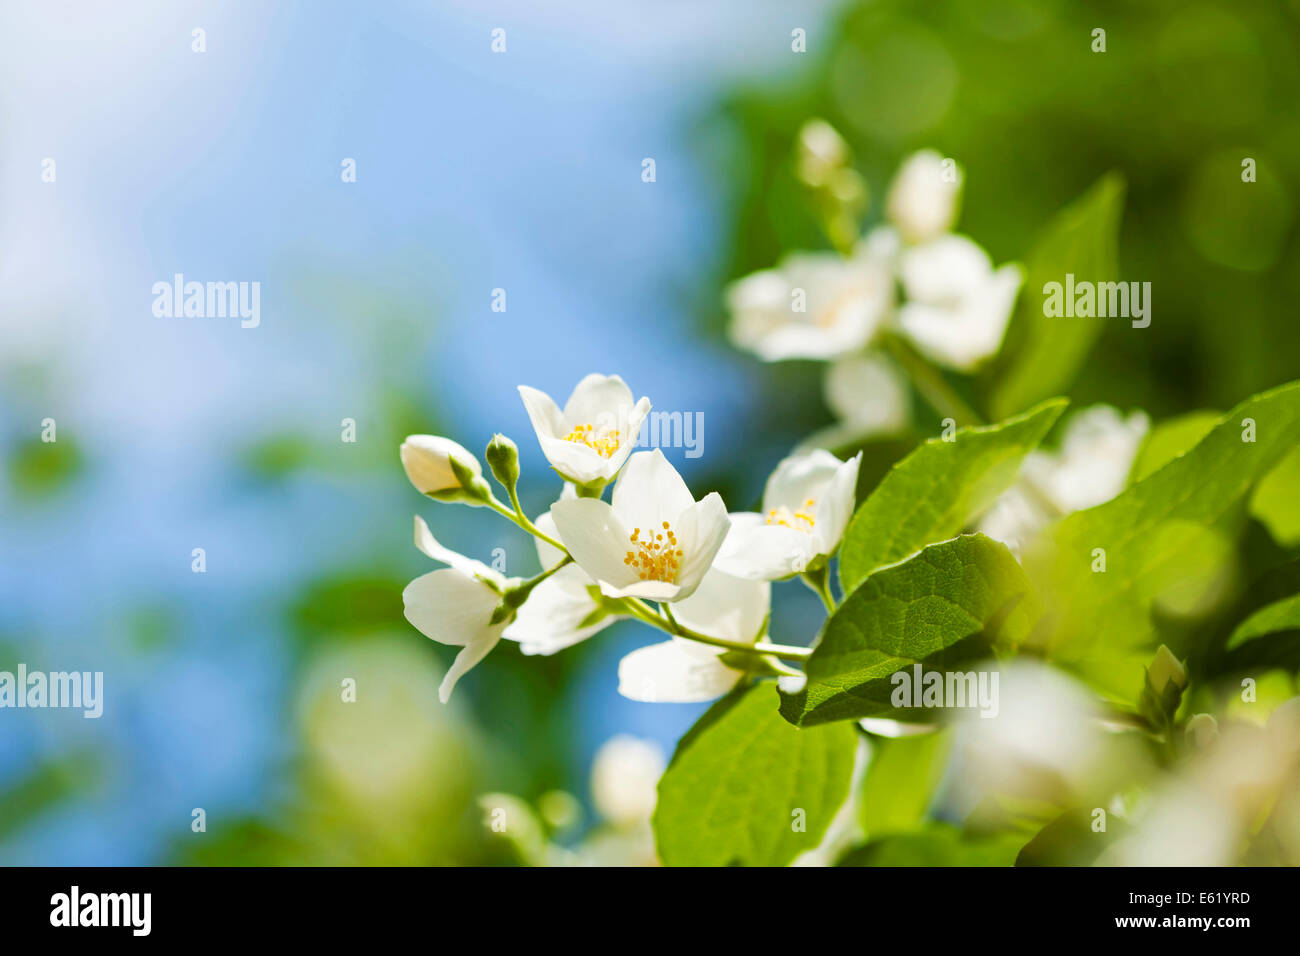 Beautiful fresh jasmine flowers in the garden, macro photography - Stock Image